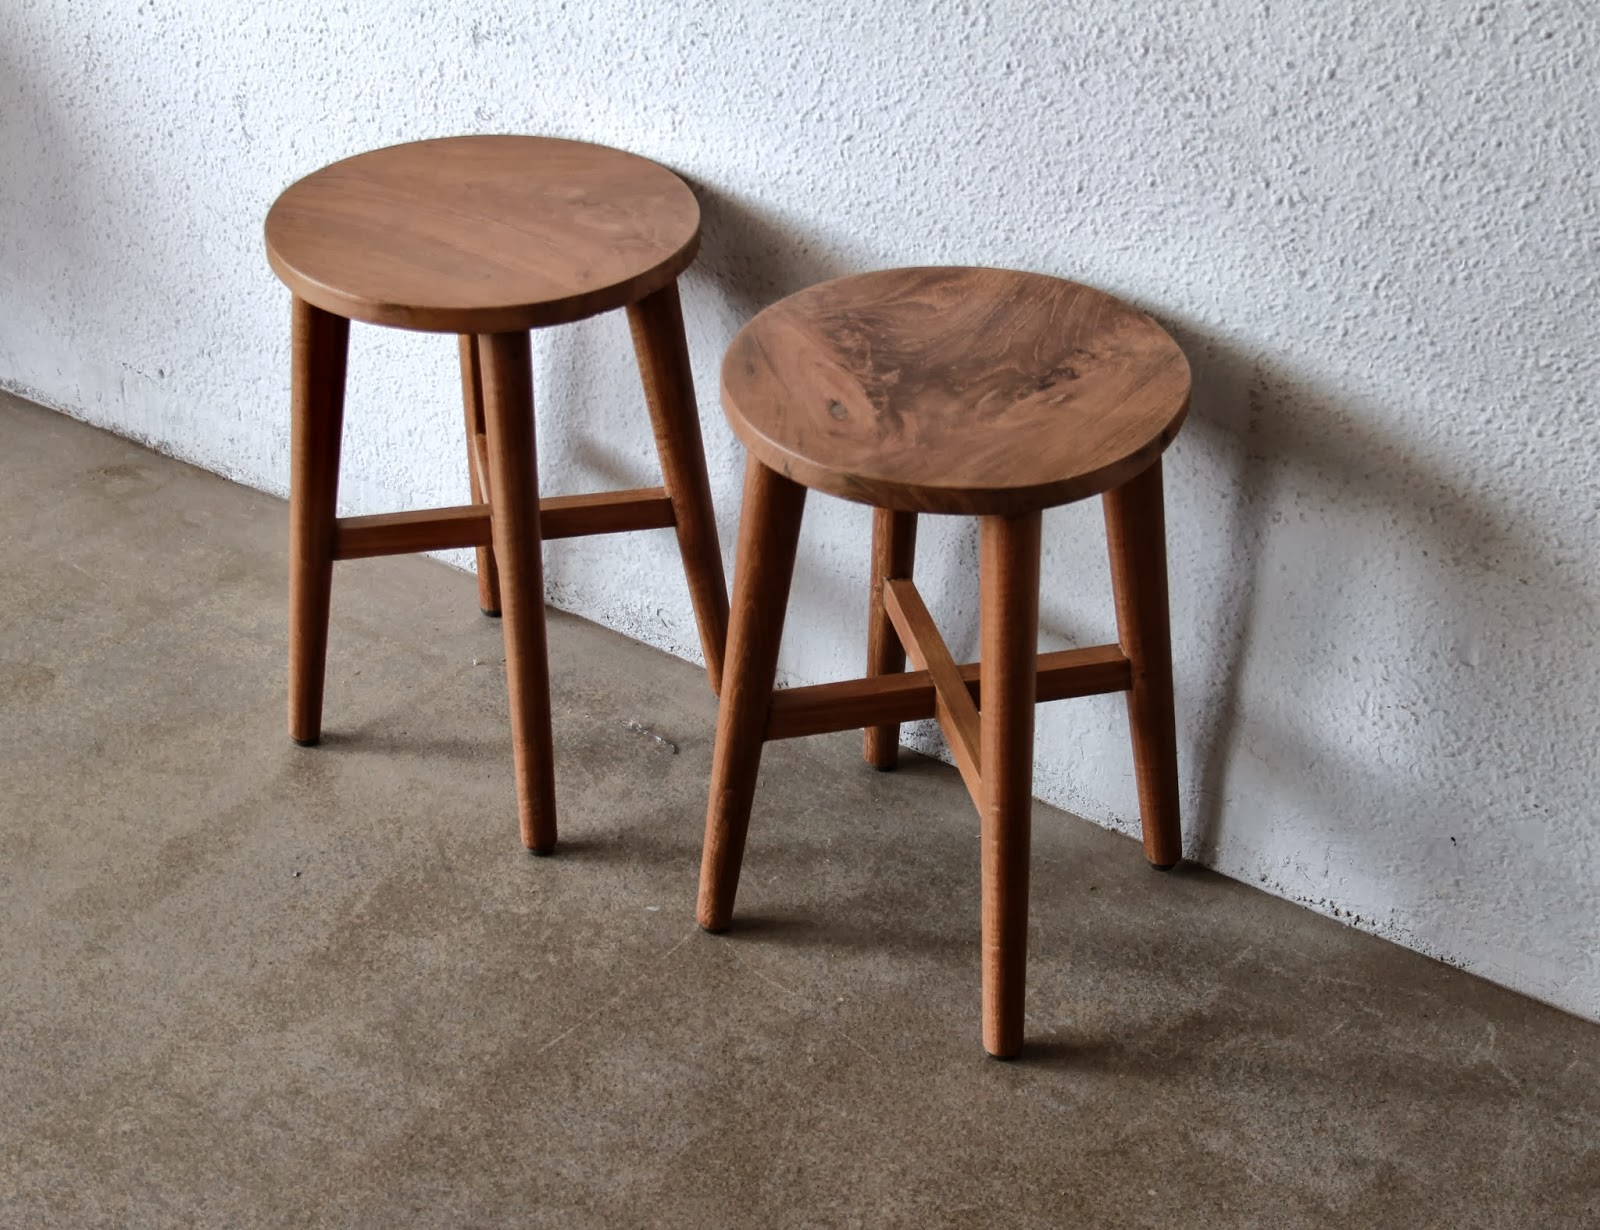 second charm furniture stools barstools bar chairs and benches